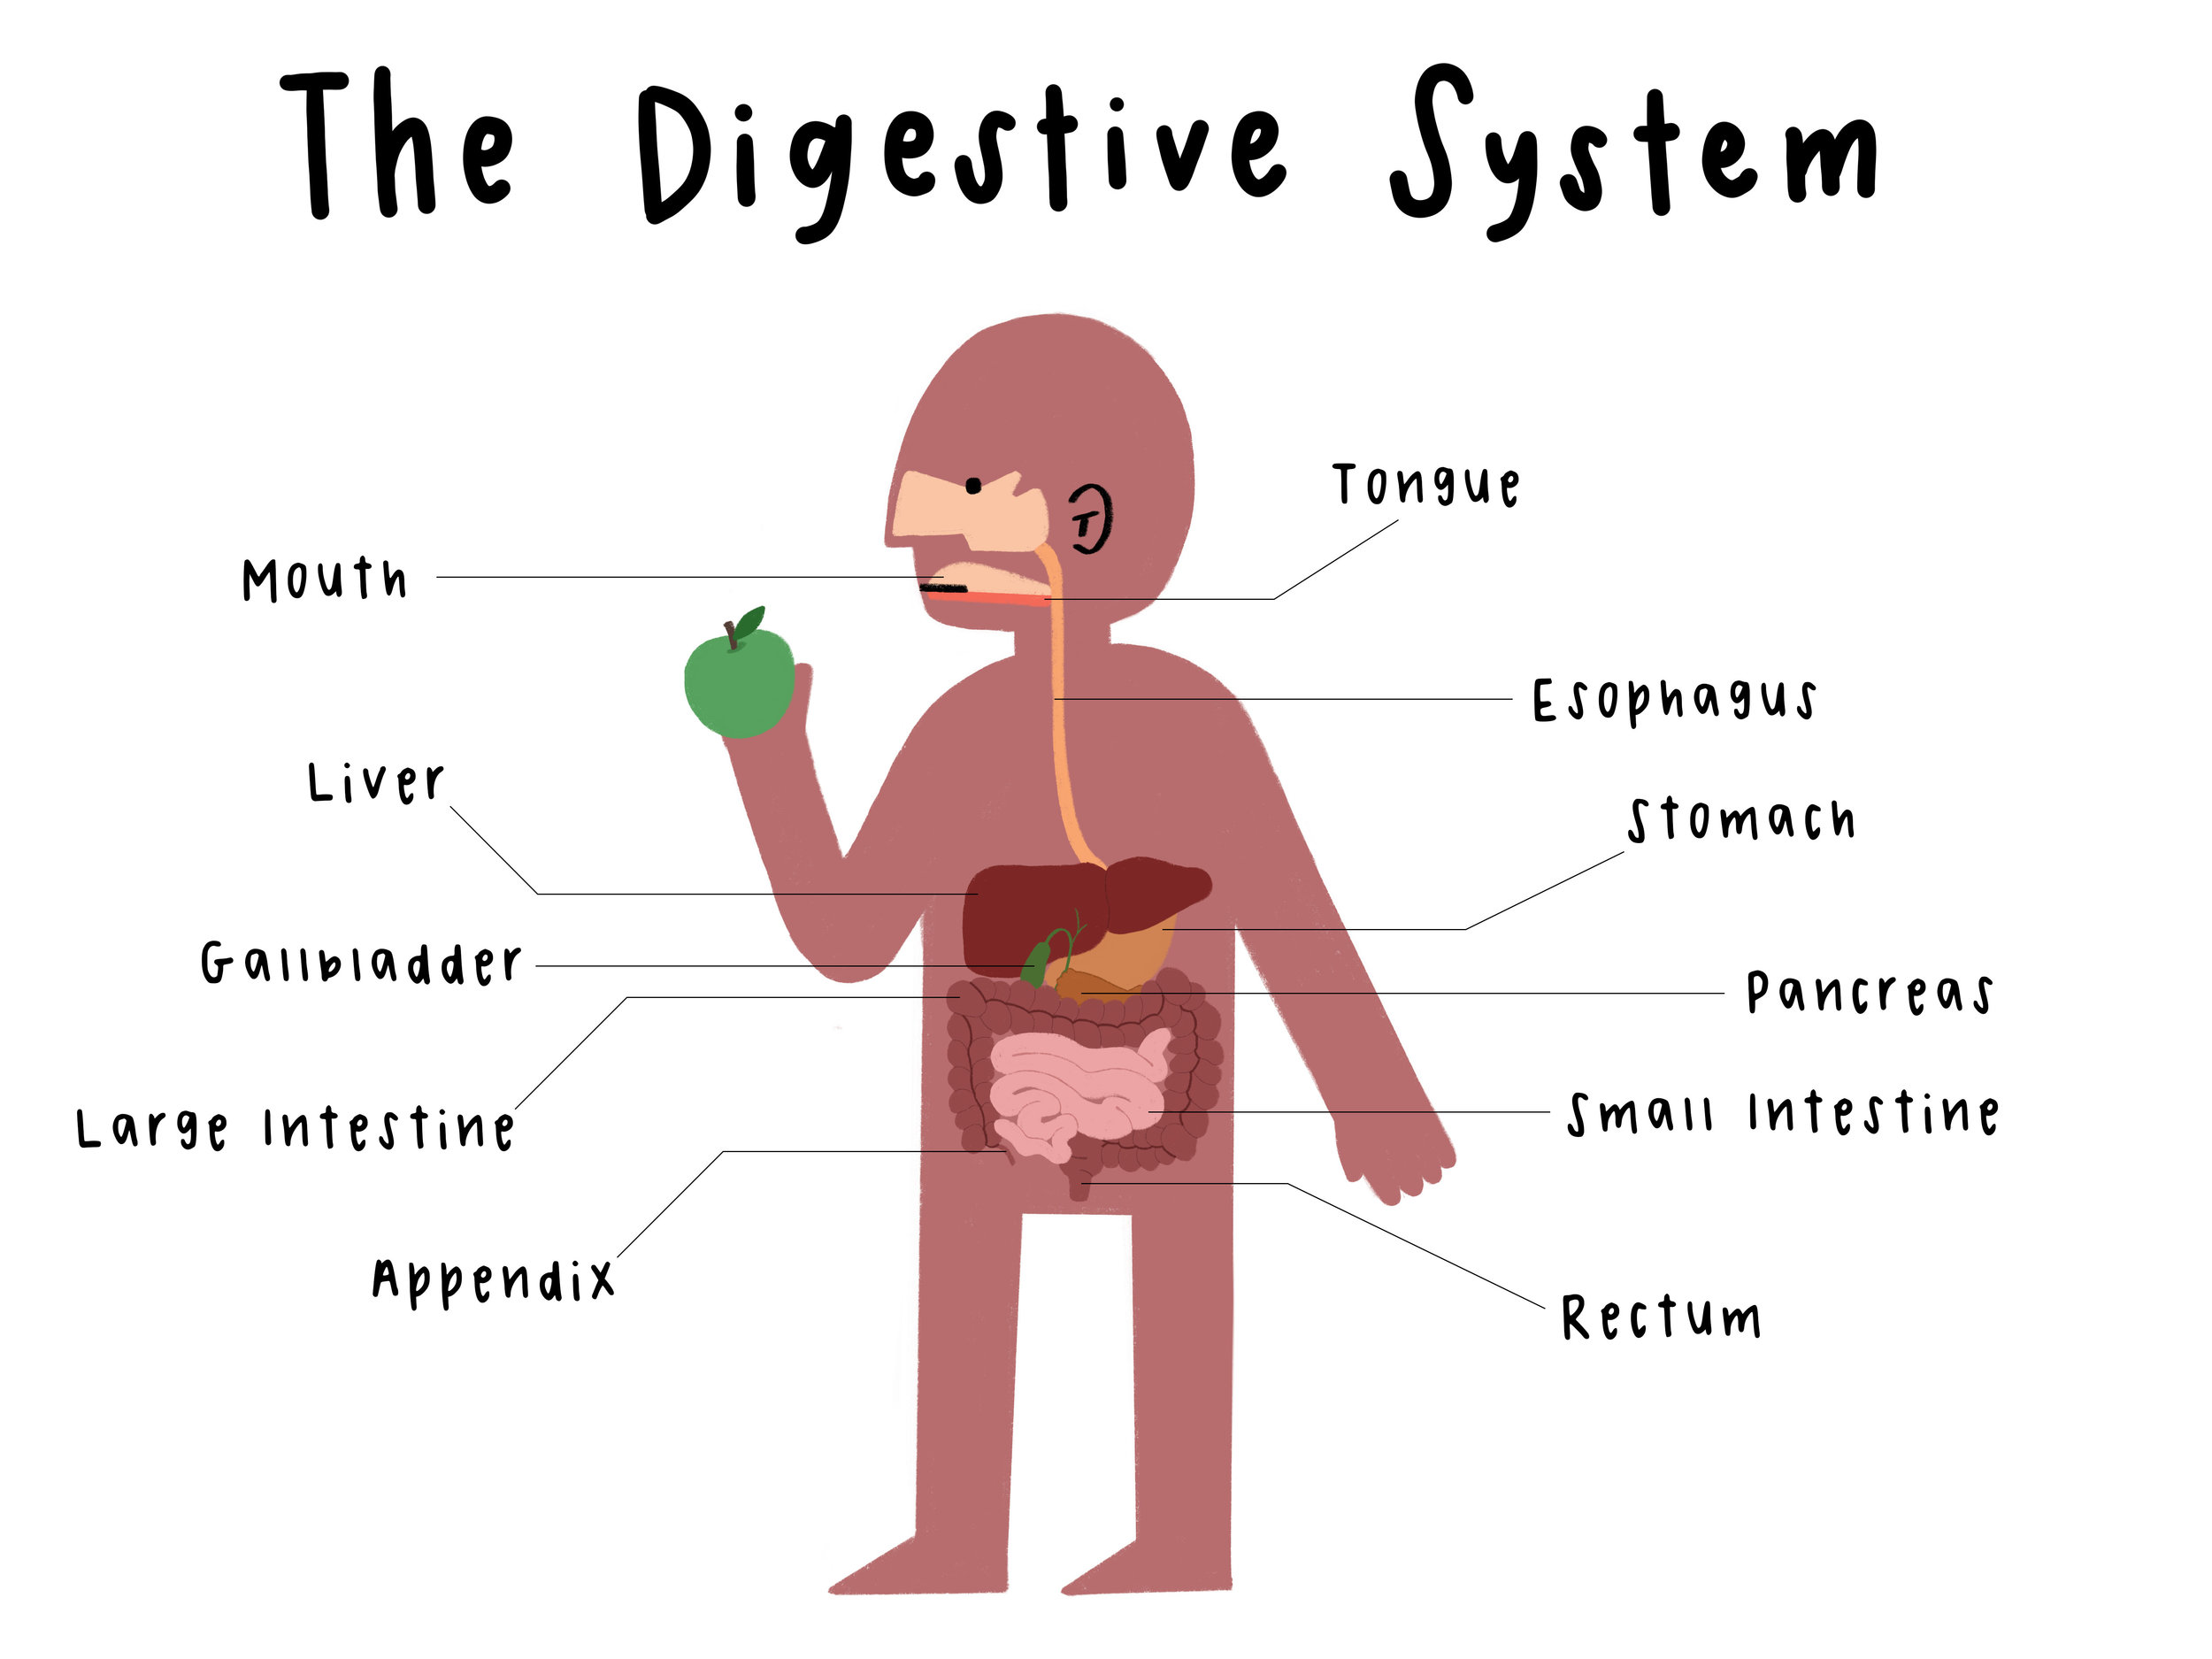 the digestive system_labeled.jpg